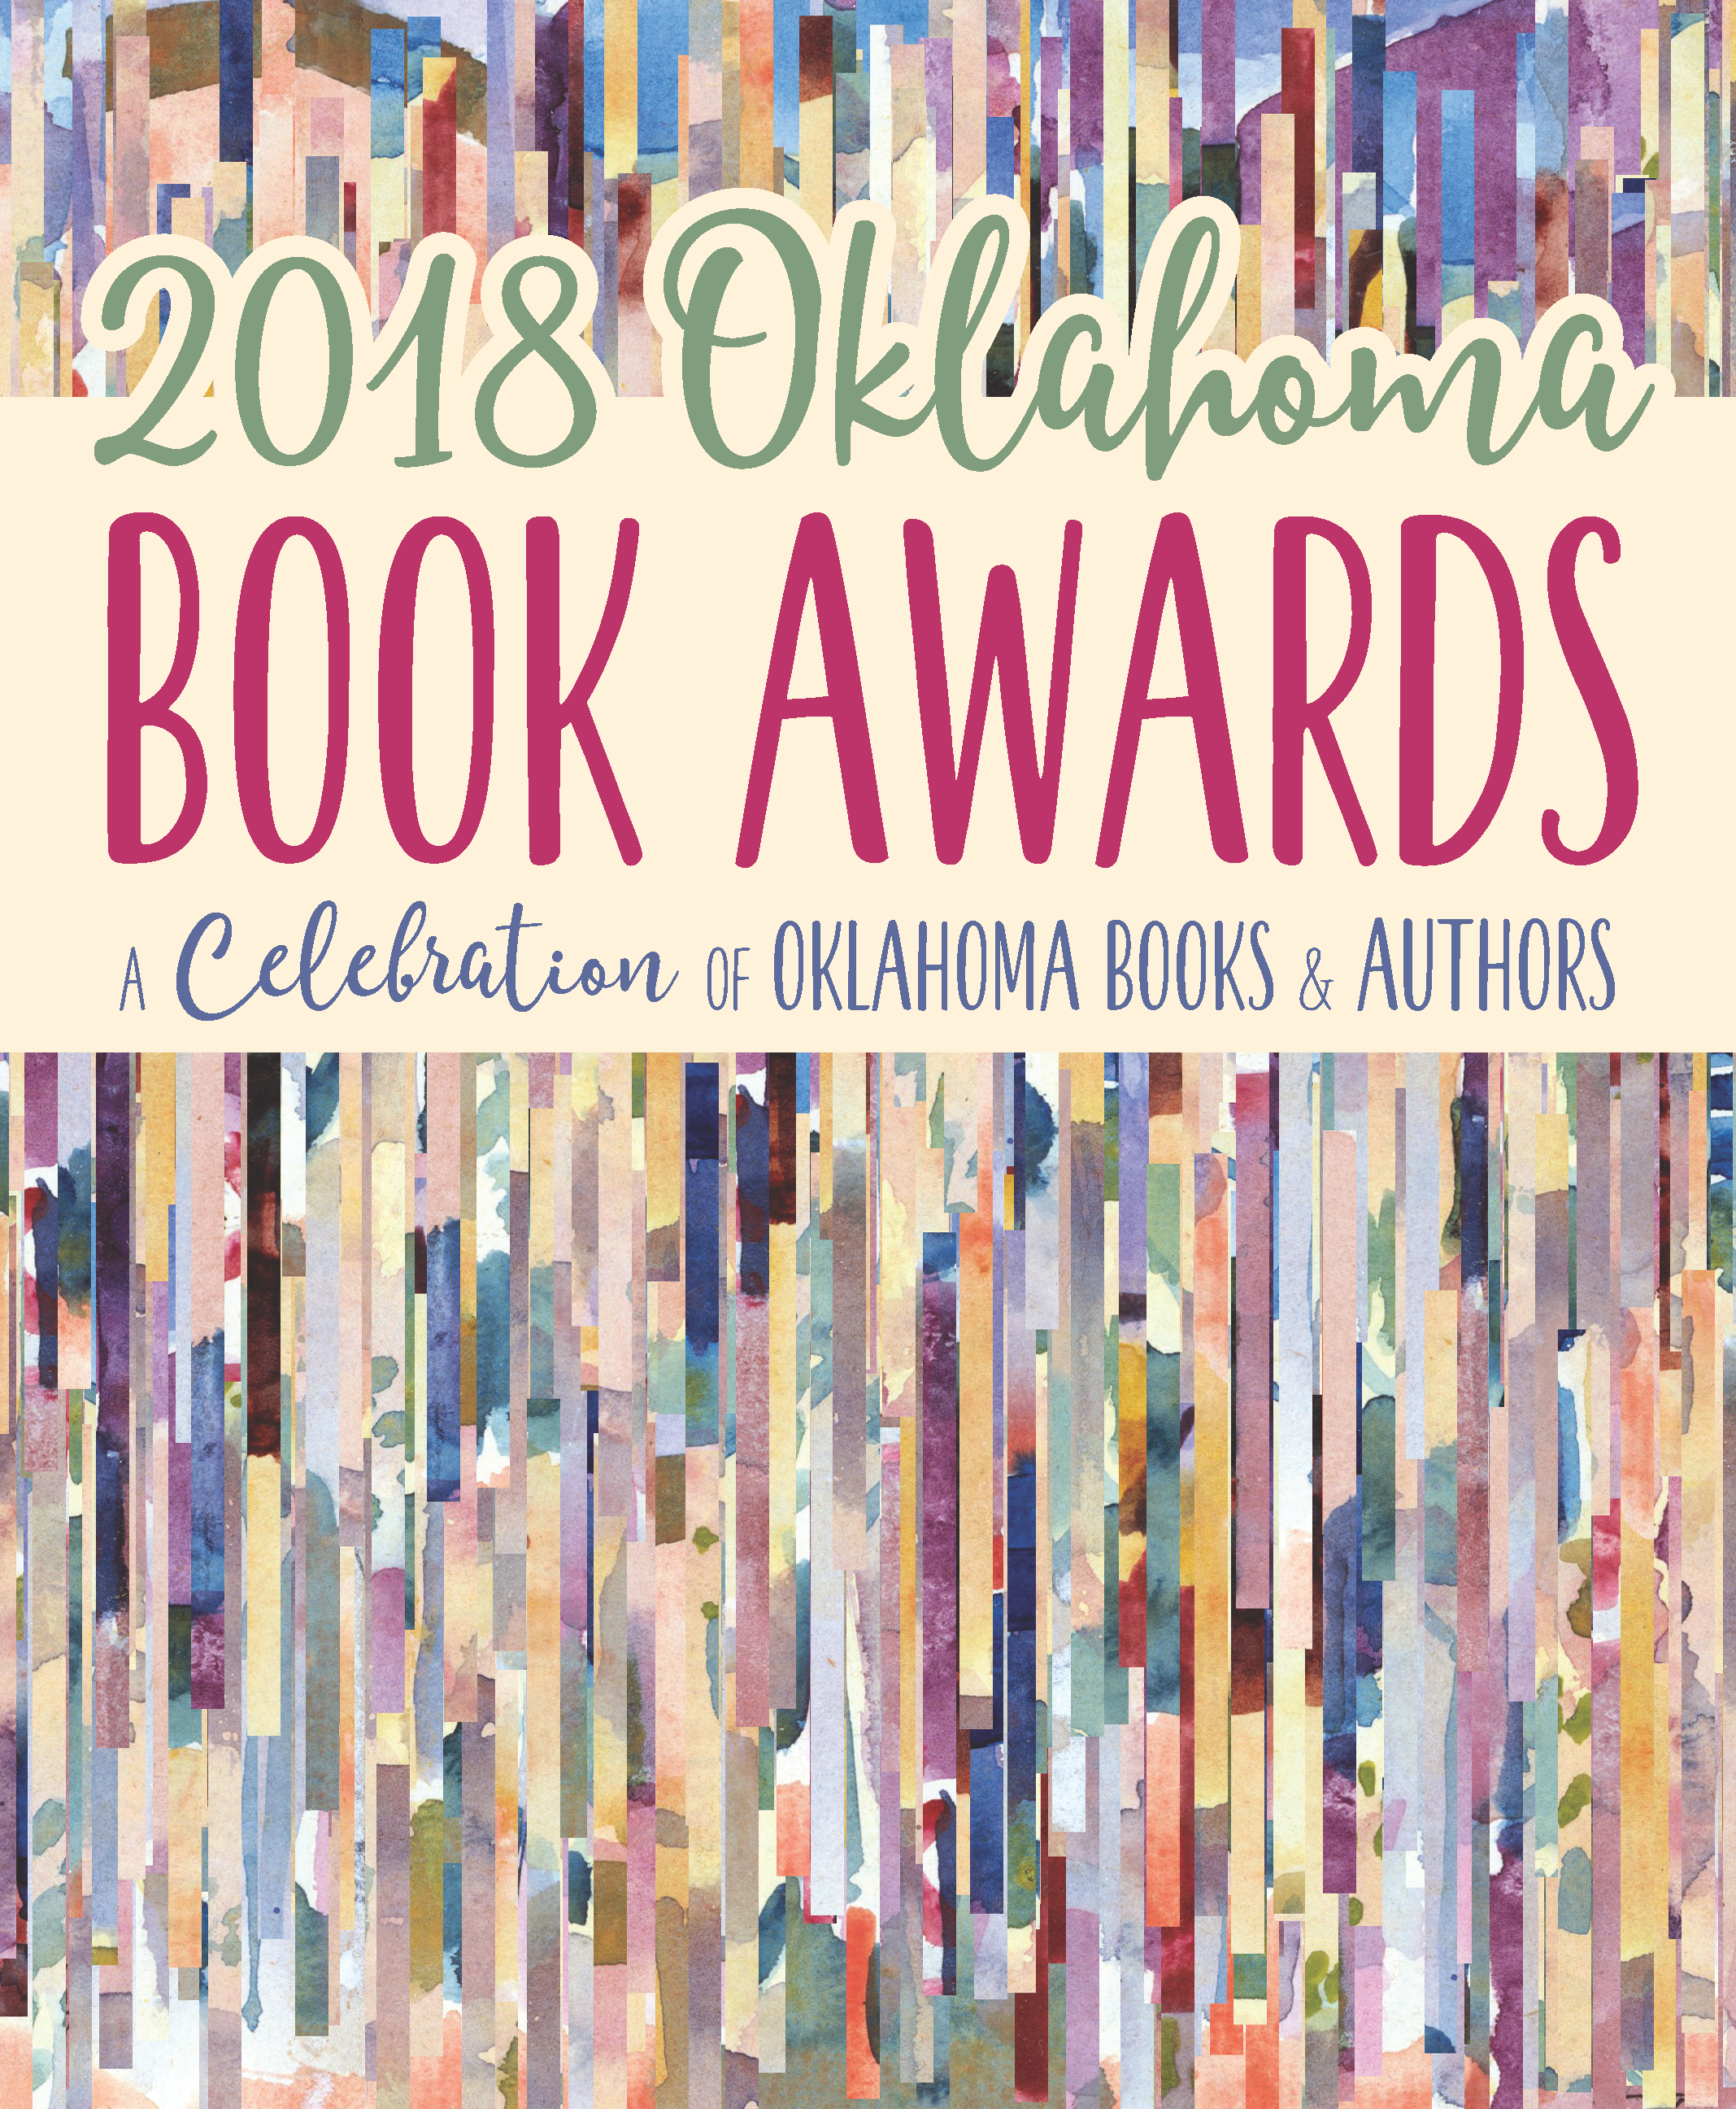 2018 Oklahoma Book Awards program cover